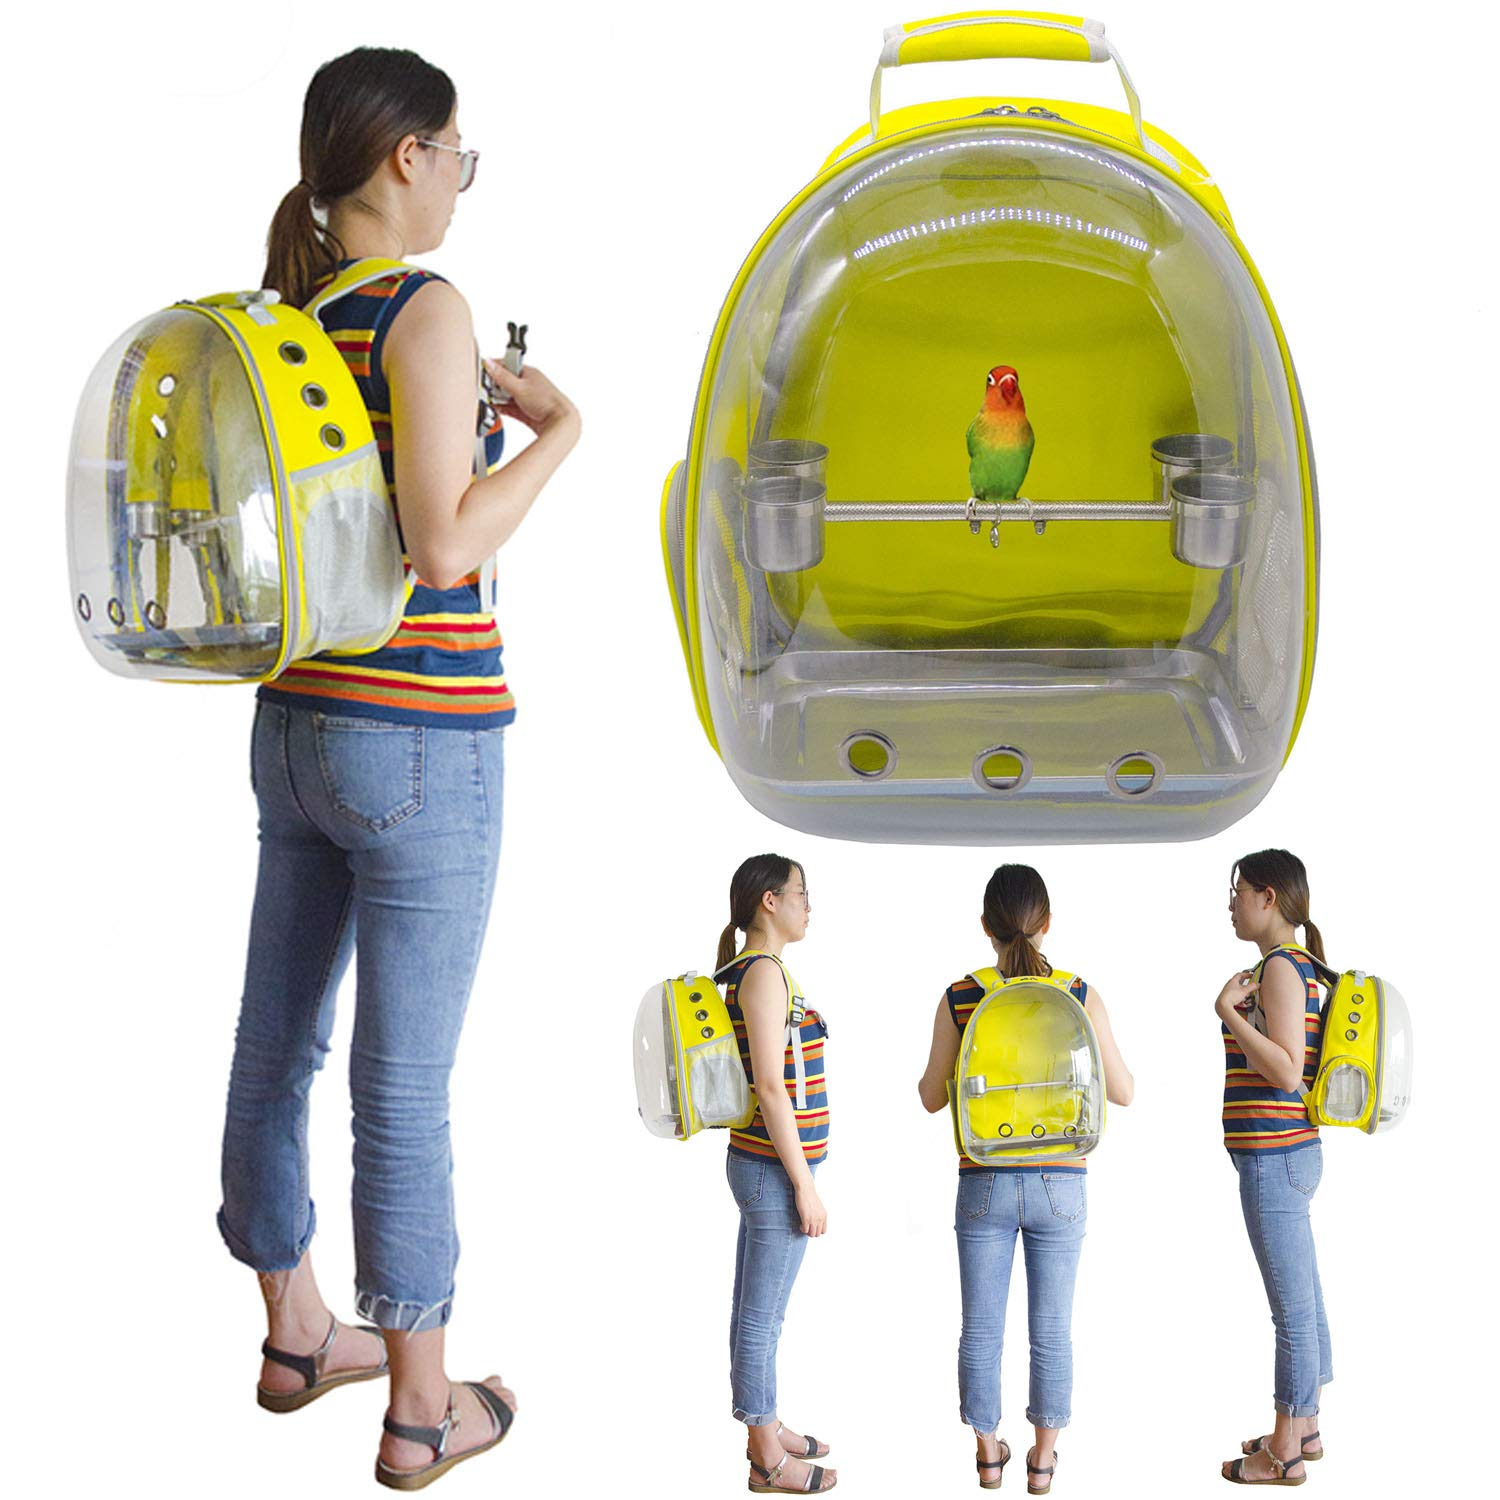 Deloky Parrot Bird Carrier Space Capsule -Transparent Breathable 360° Sightseeing Outdoor Bird Travel Bag Backpack with Stainless Steel Bird Stand perches (Yellow) by Deloky